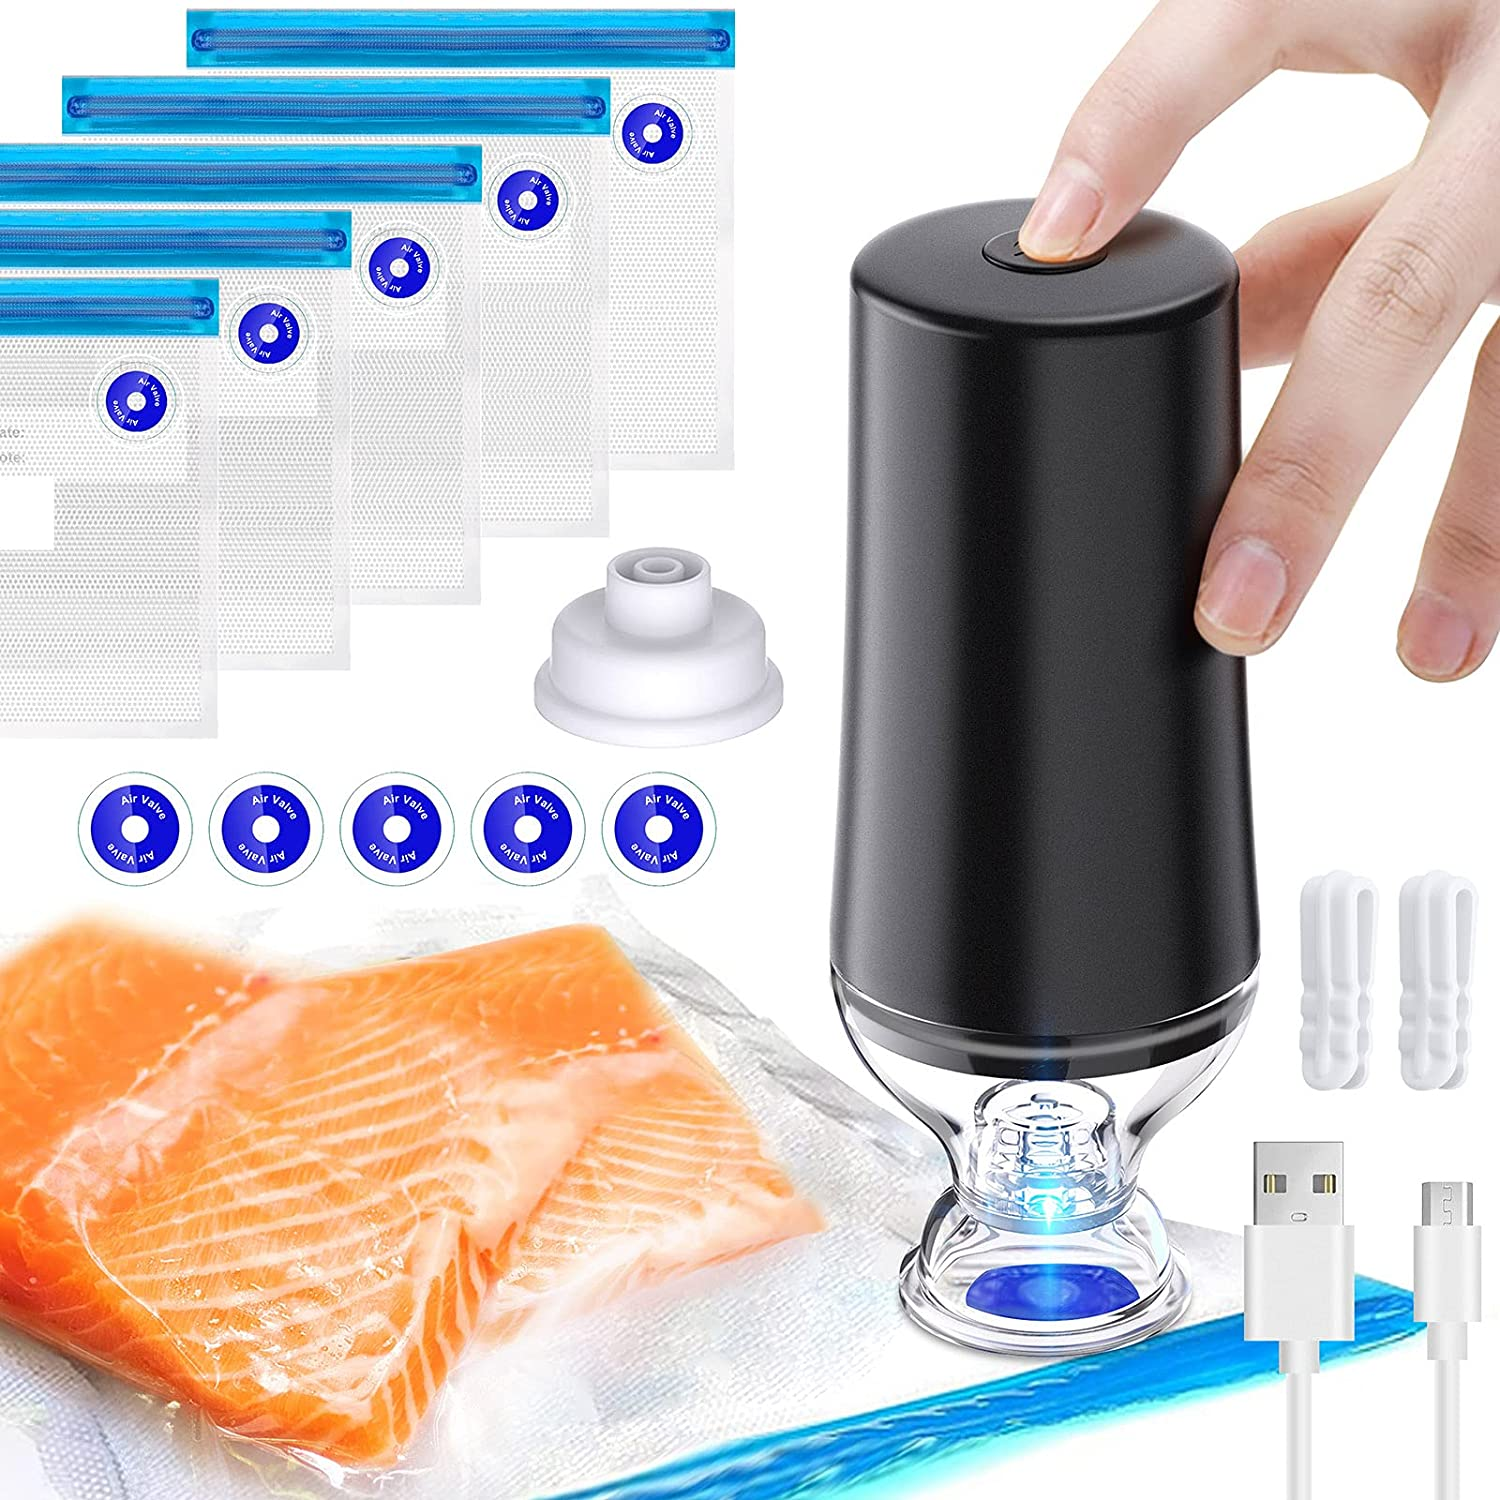 LORDSON Vacuum Sealer Handheld, Automatic Portable Food Saver Sous Vide Bags Rechargeable Air Sealing Machine for Food Cloth Storage Bags